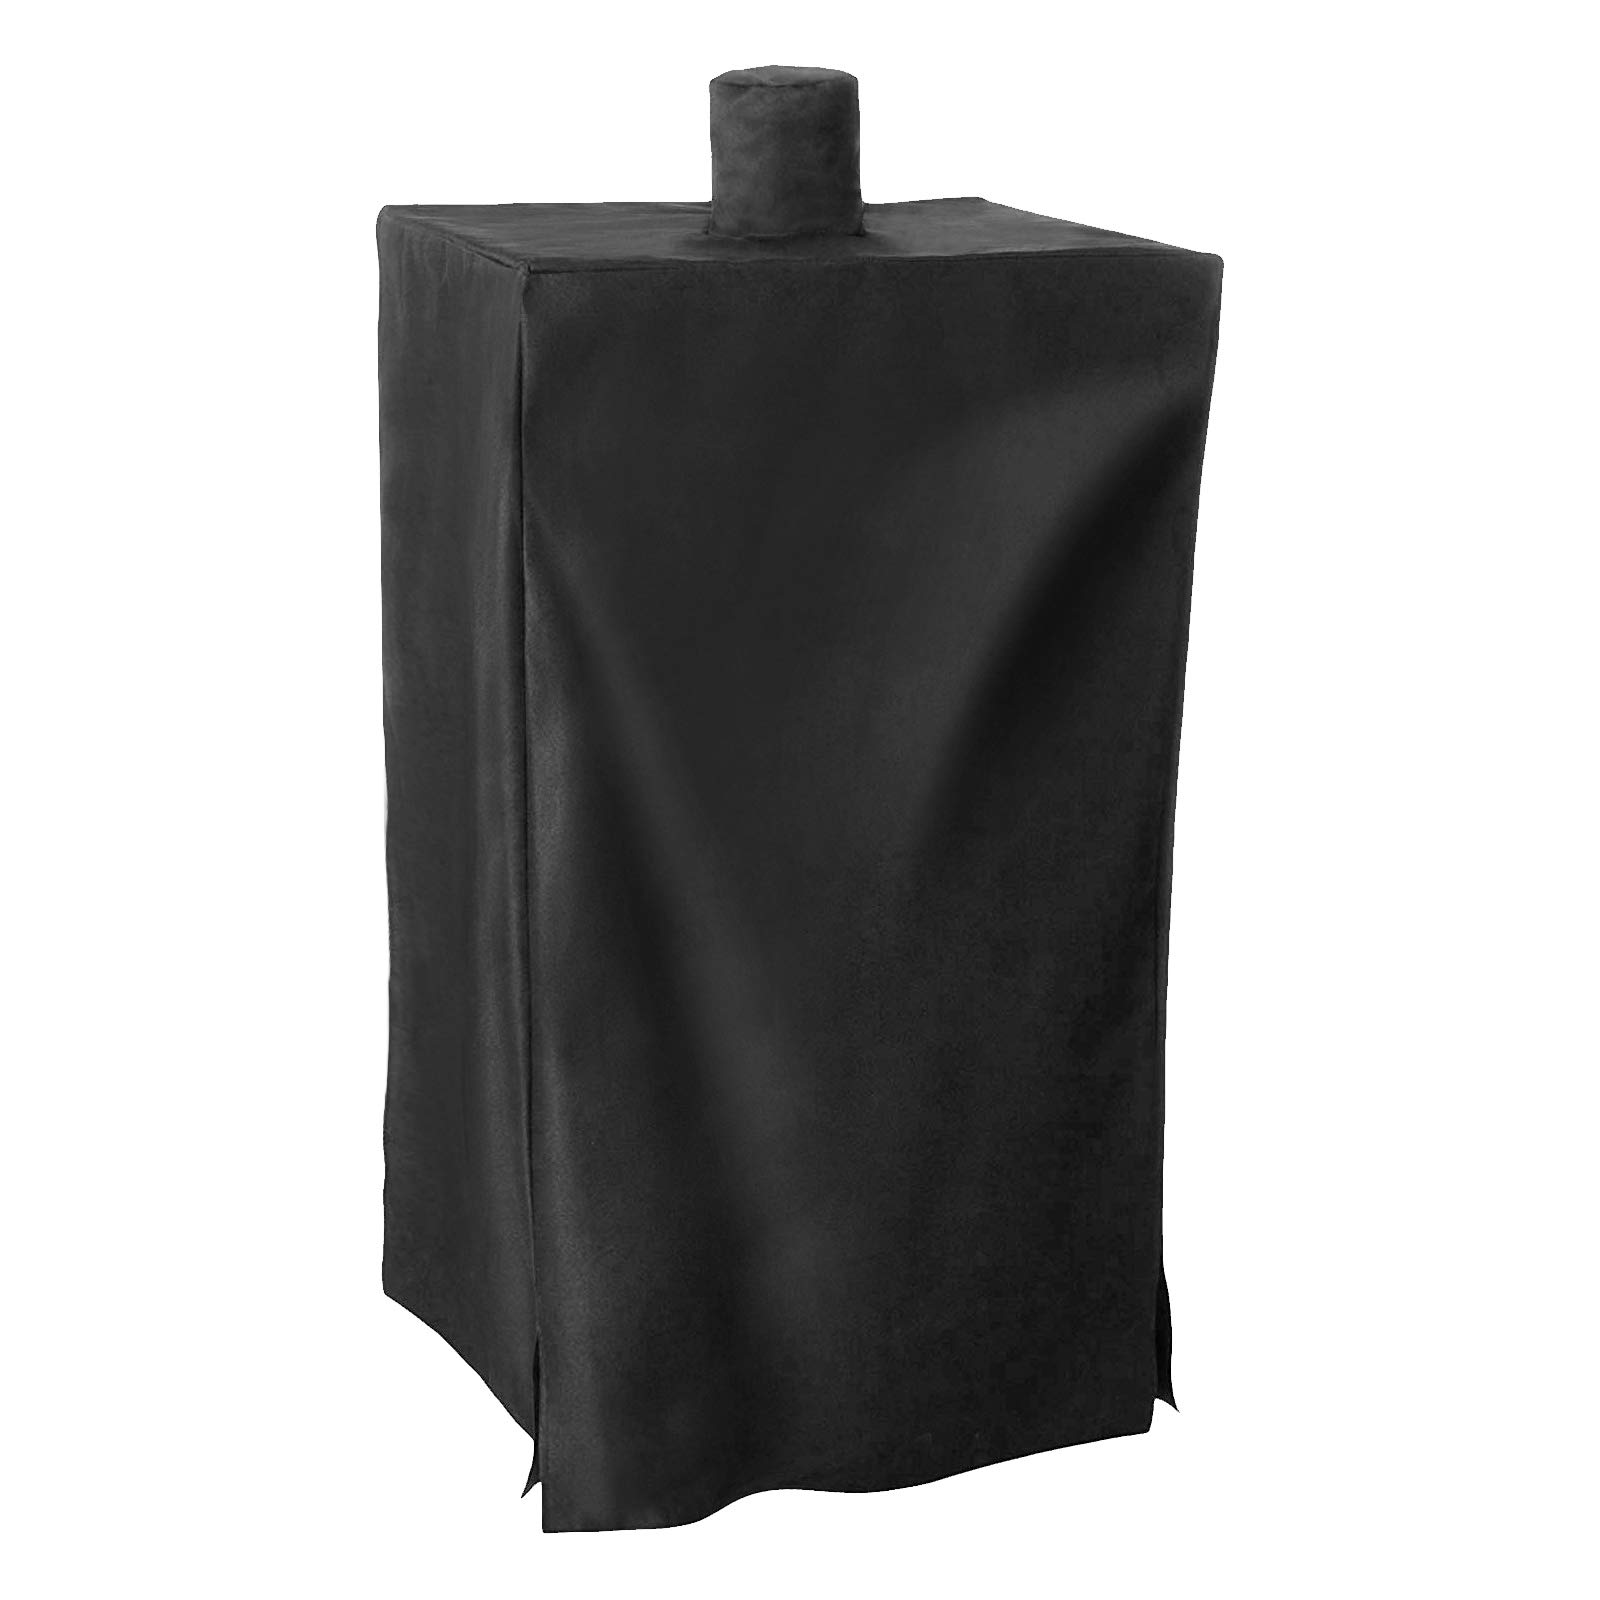 QuliMetal 73550 Grill Cover for Pit Boss PBV5P1 Smoker Cover, Heavy Duty and Waterproof Grill Cover Fits for Pit Boss Model Series 4 PBV4PS1 Smoker with Zipper by QuliMetal